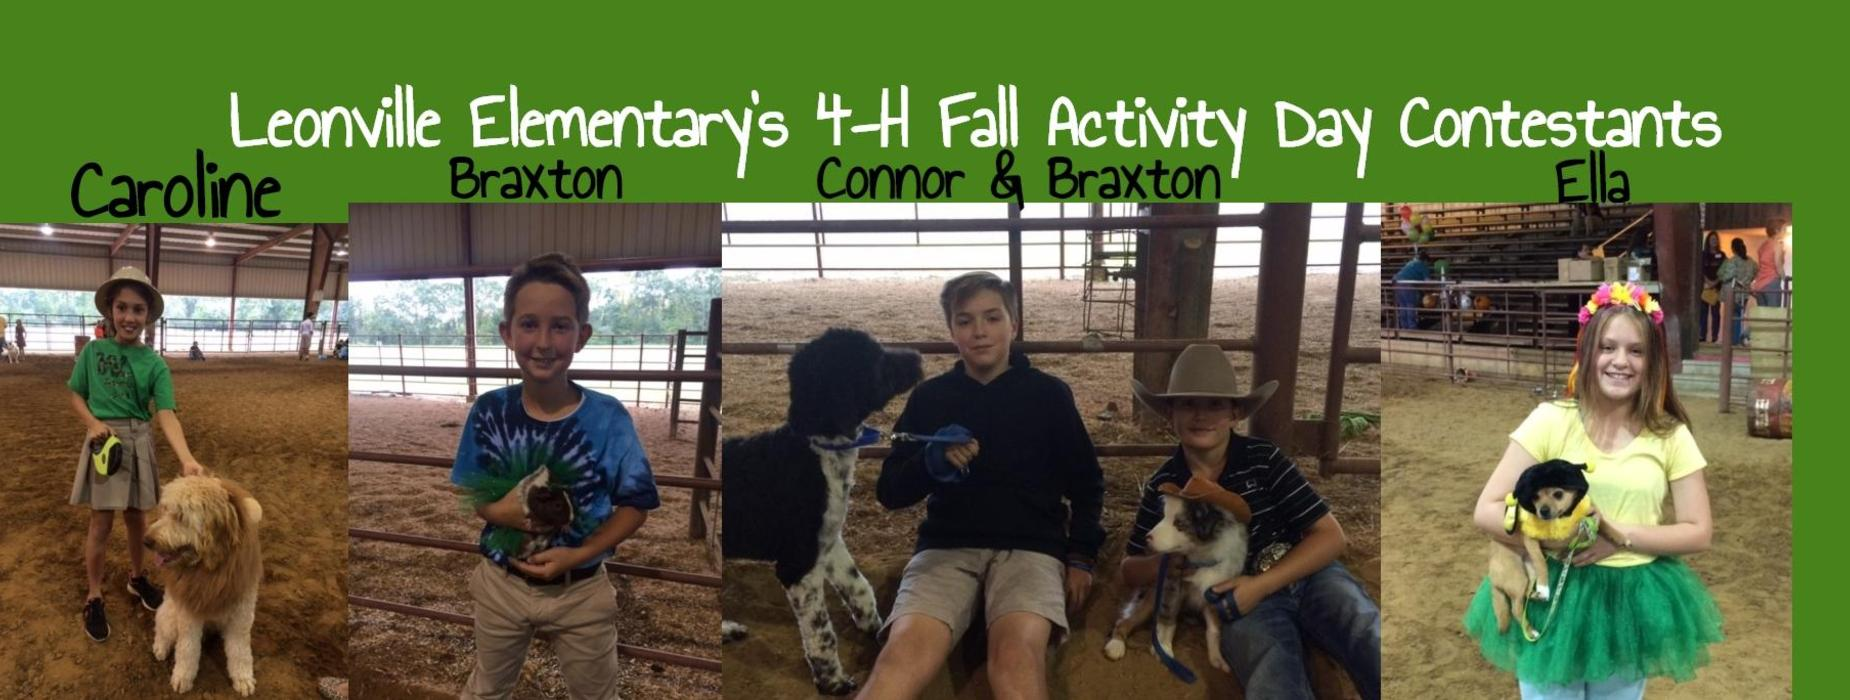 Leonville Elementary's 4-H Fall Activity Day Contestants